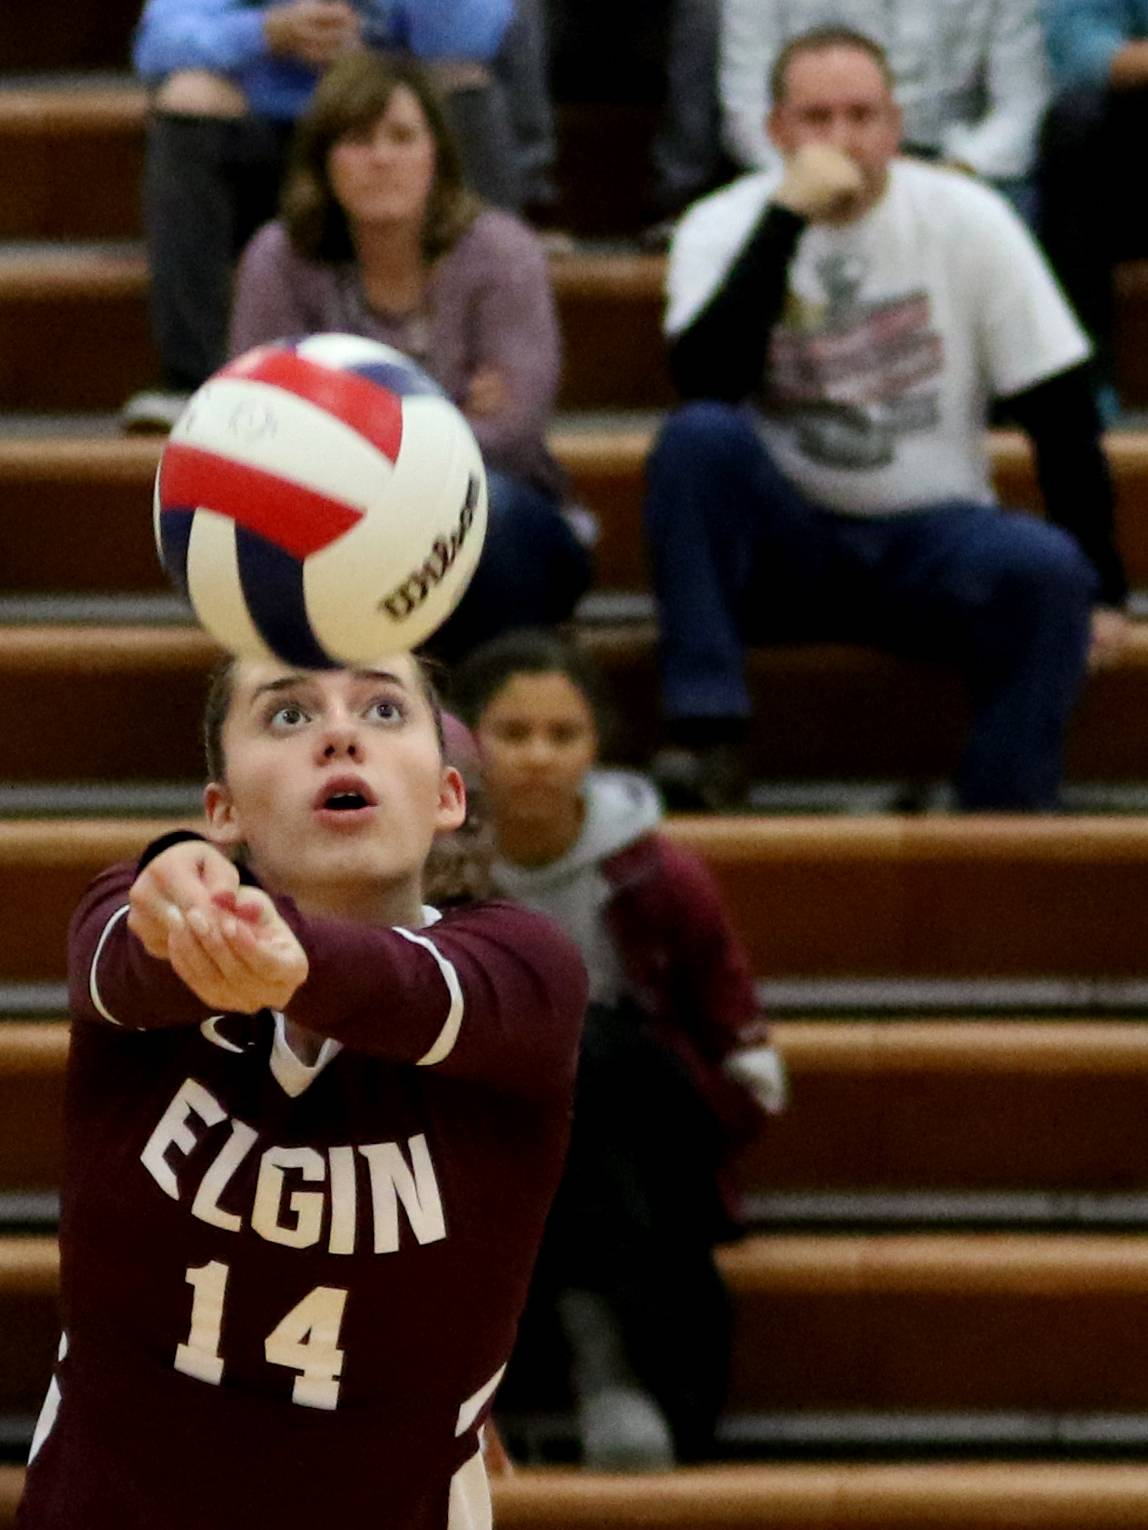 Elgin's Emily Graves passes the ball in varsity girls volleyball at Larkin on Wednesday.